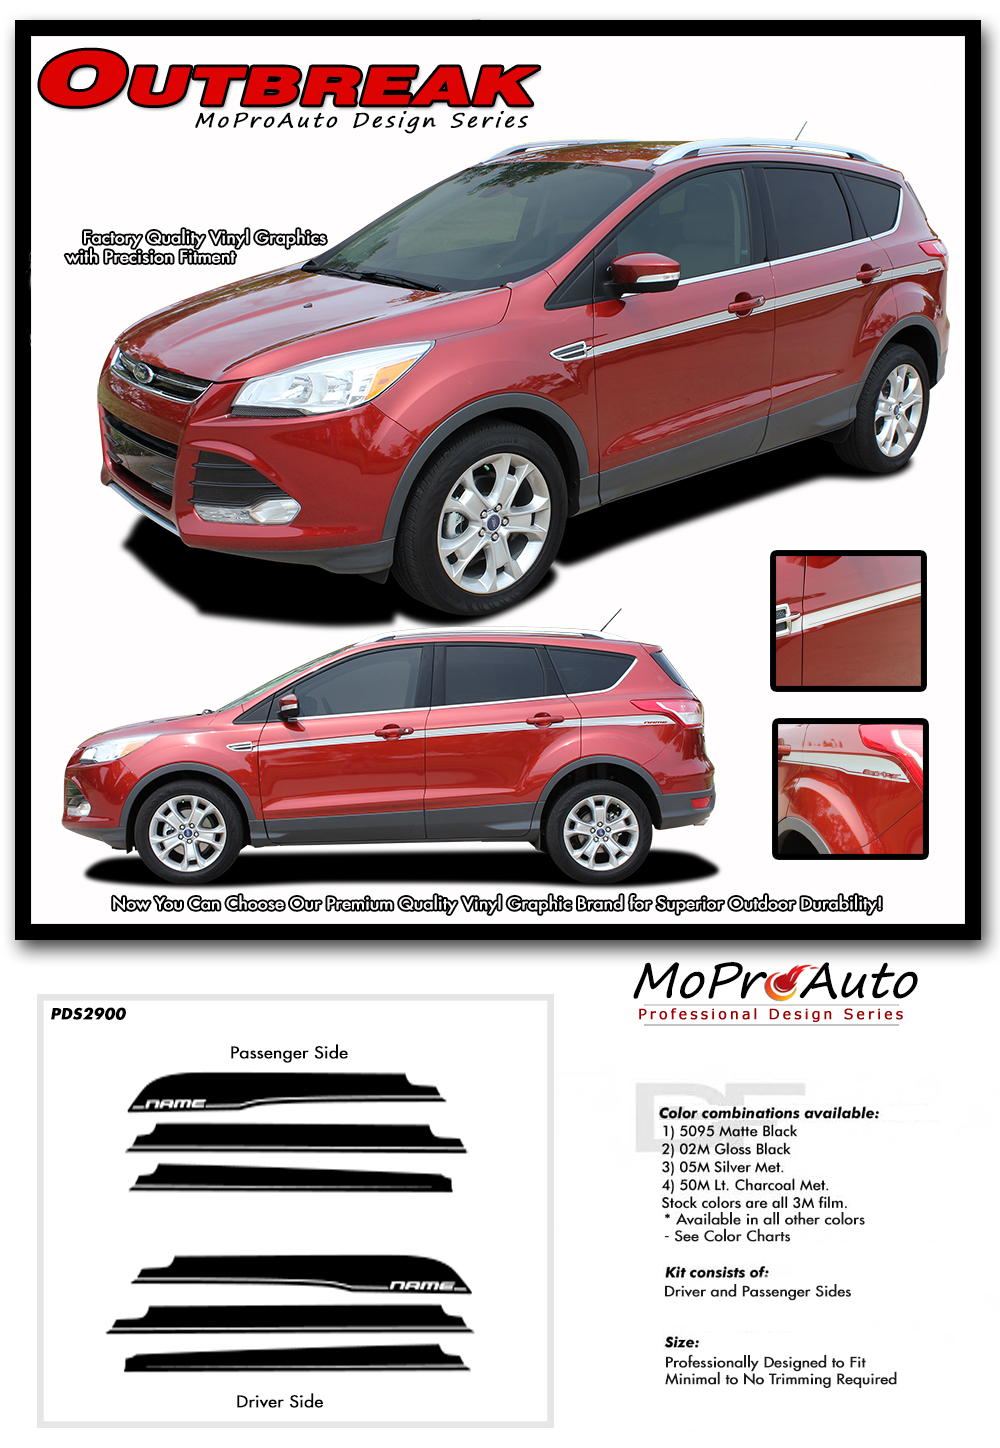 Outbreak Ford Escape Door Stripes Body Line Vinyl Graphics Decals Kit For 2013 2019 Models Moproauto Professional Vinyl Graphics And Striping